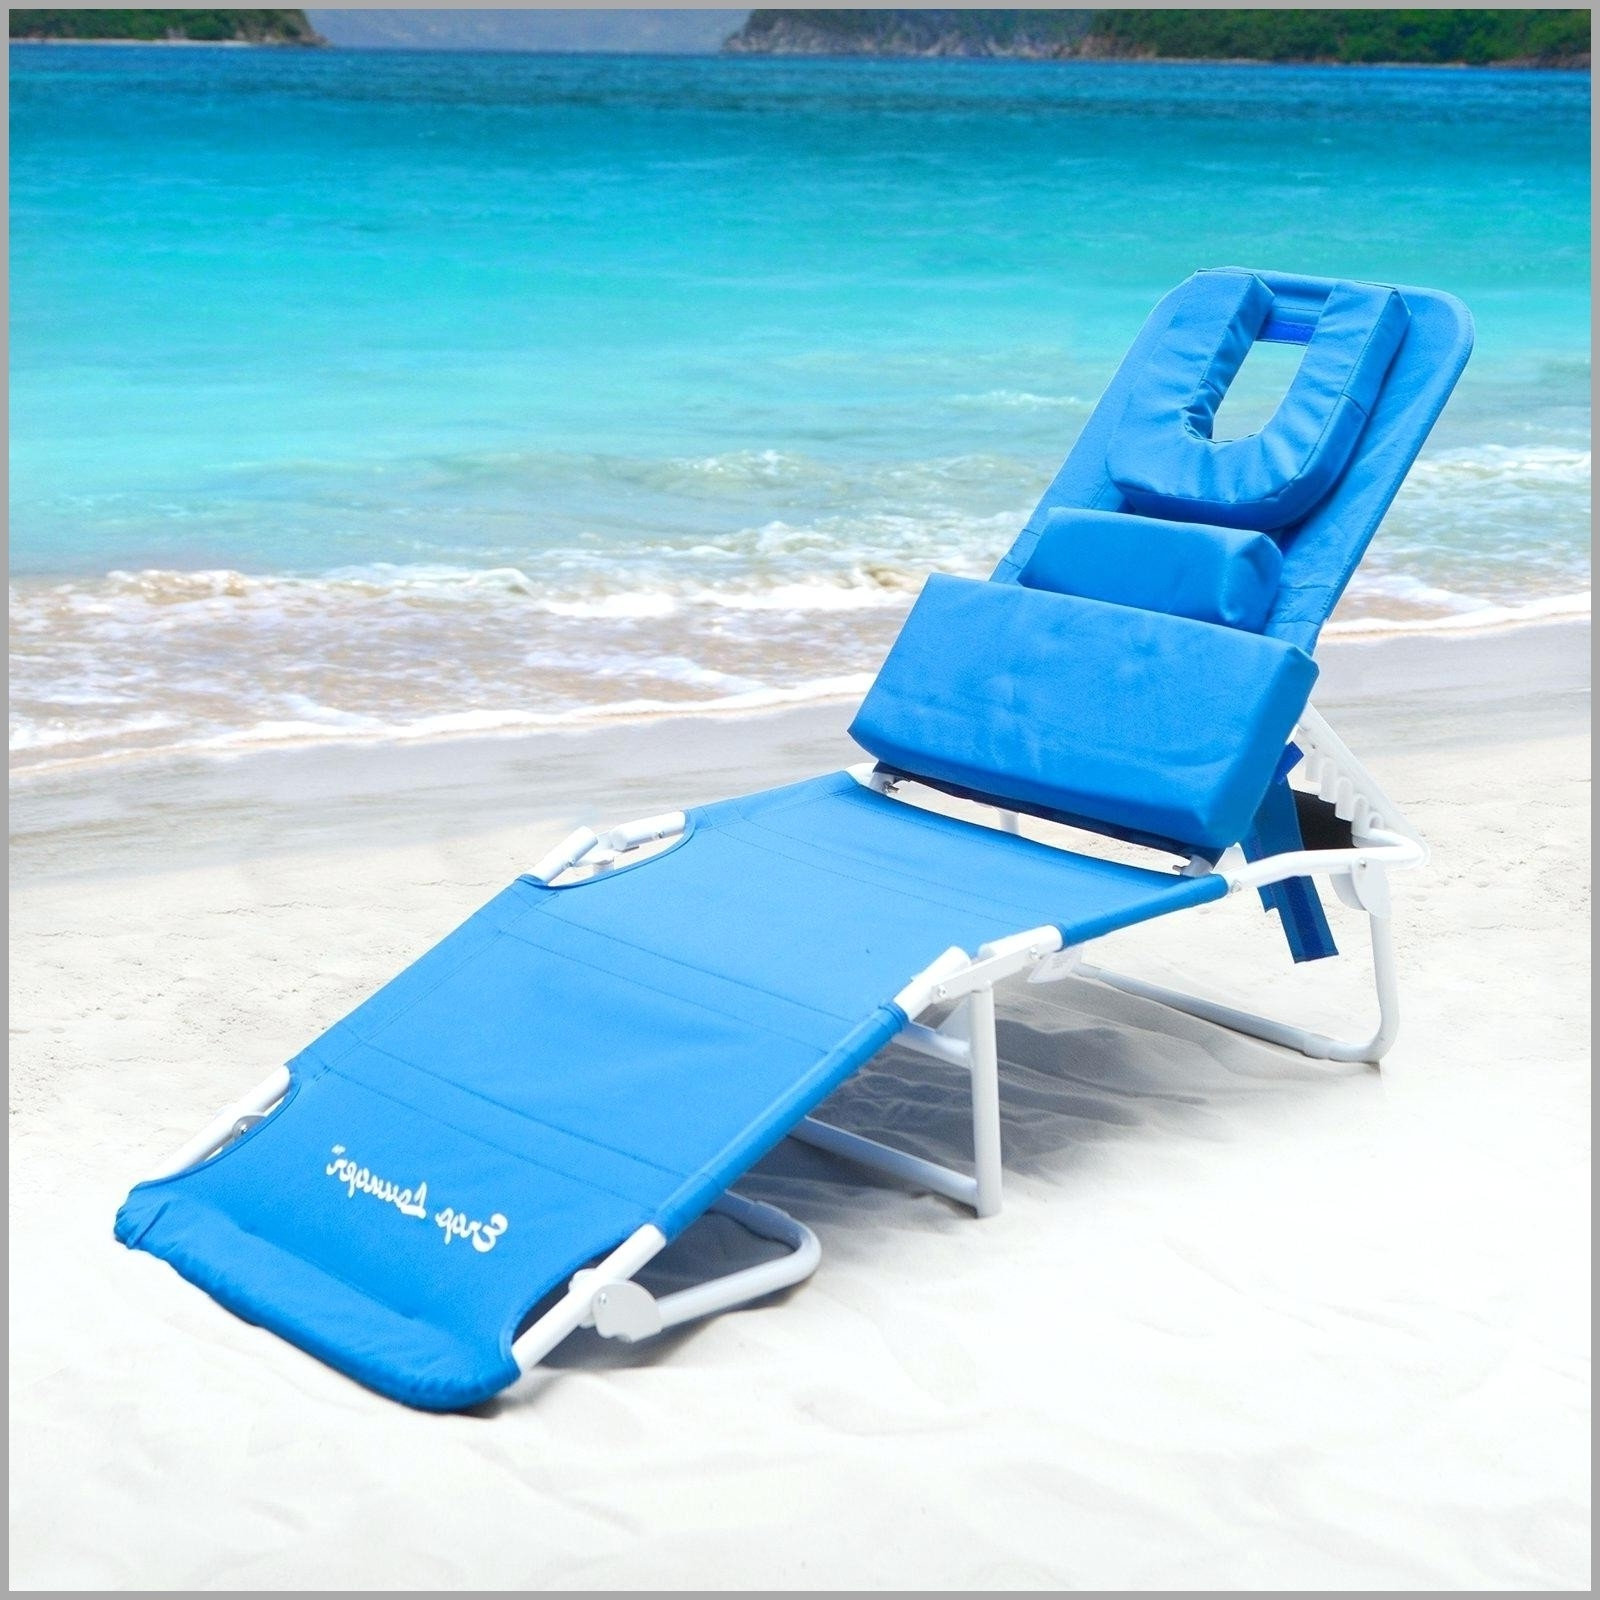 2017 Lounge Chaise Chair By Ostrich Pertaining To Folding Beach Chaise Lounge (View 5 of 15)